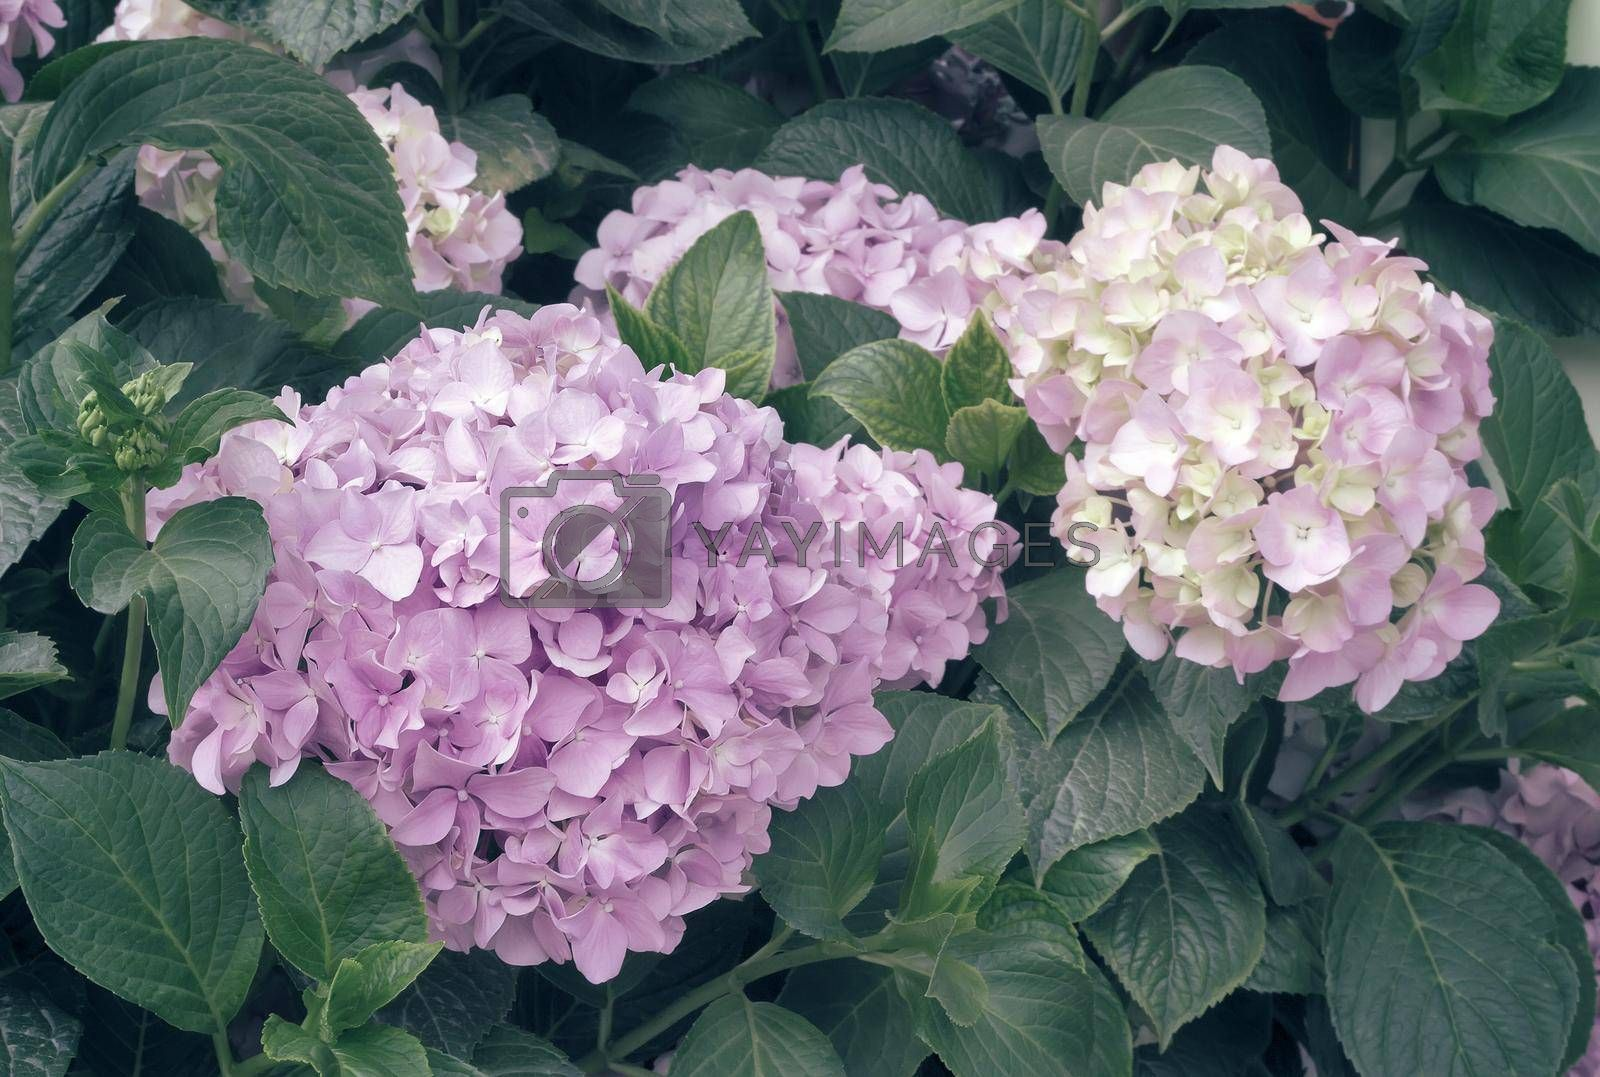 Large inflorescences of hydrangeas blooming in the garden and green leaves.